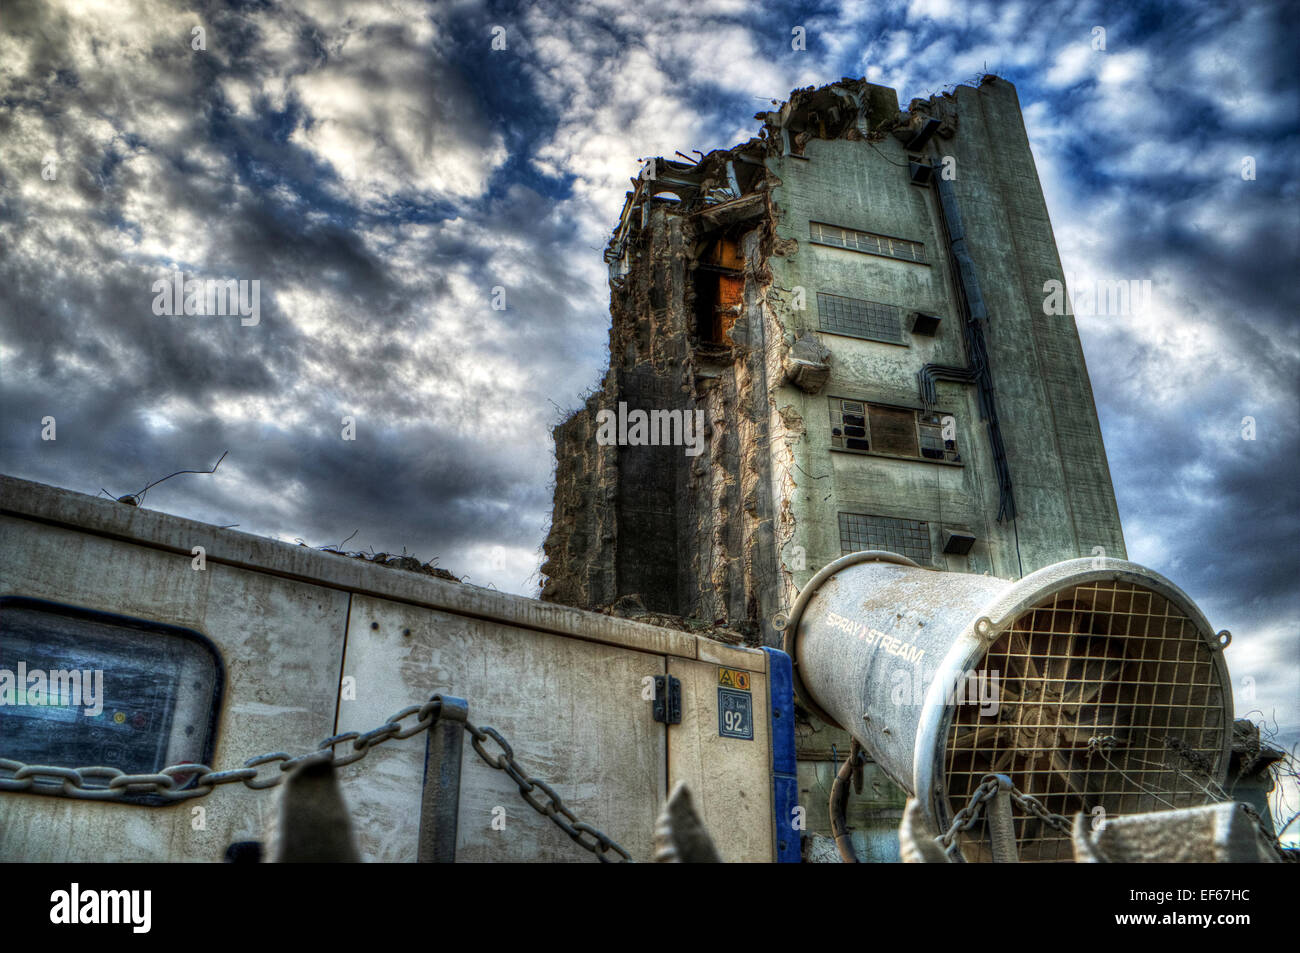 Louth Malt Kiln demolition Paul's Malt spray stream machine to dampen down dust emissions Lincolnshire UK England - Stock Image